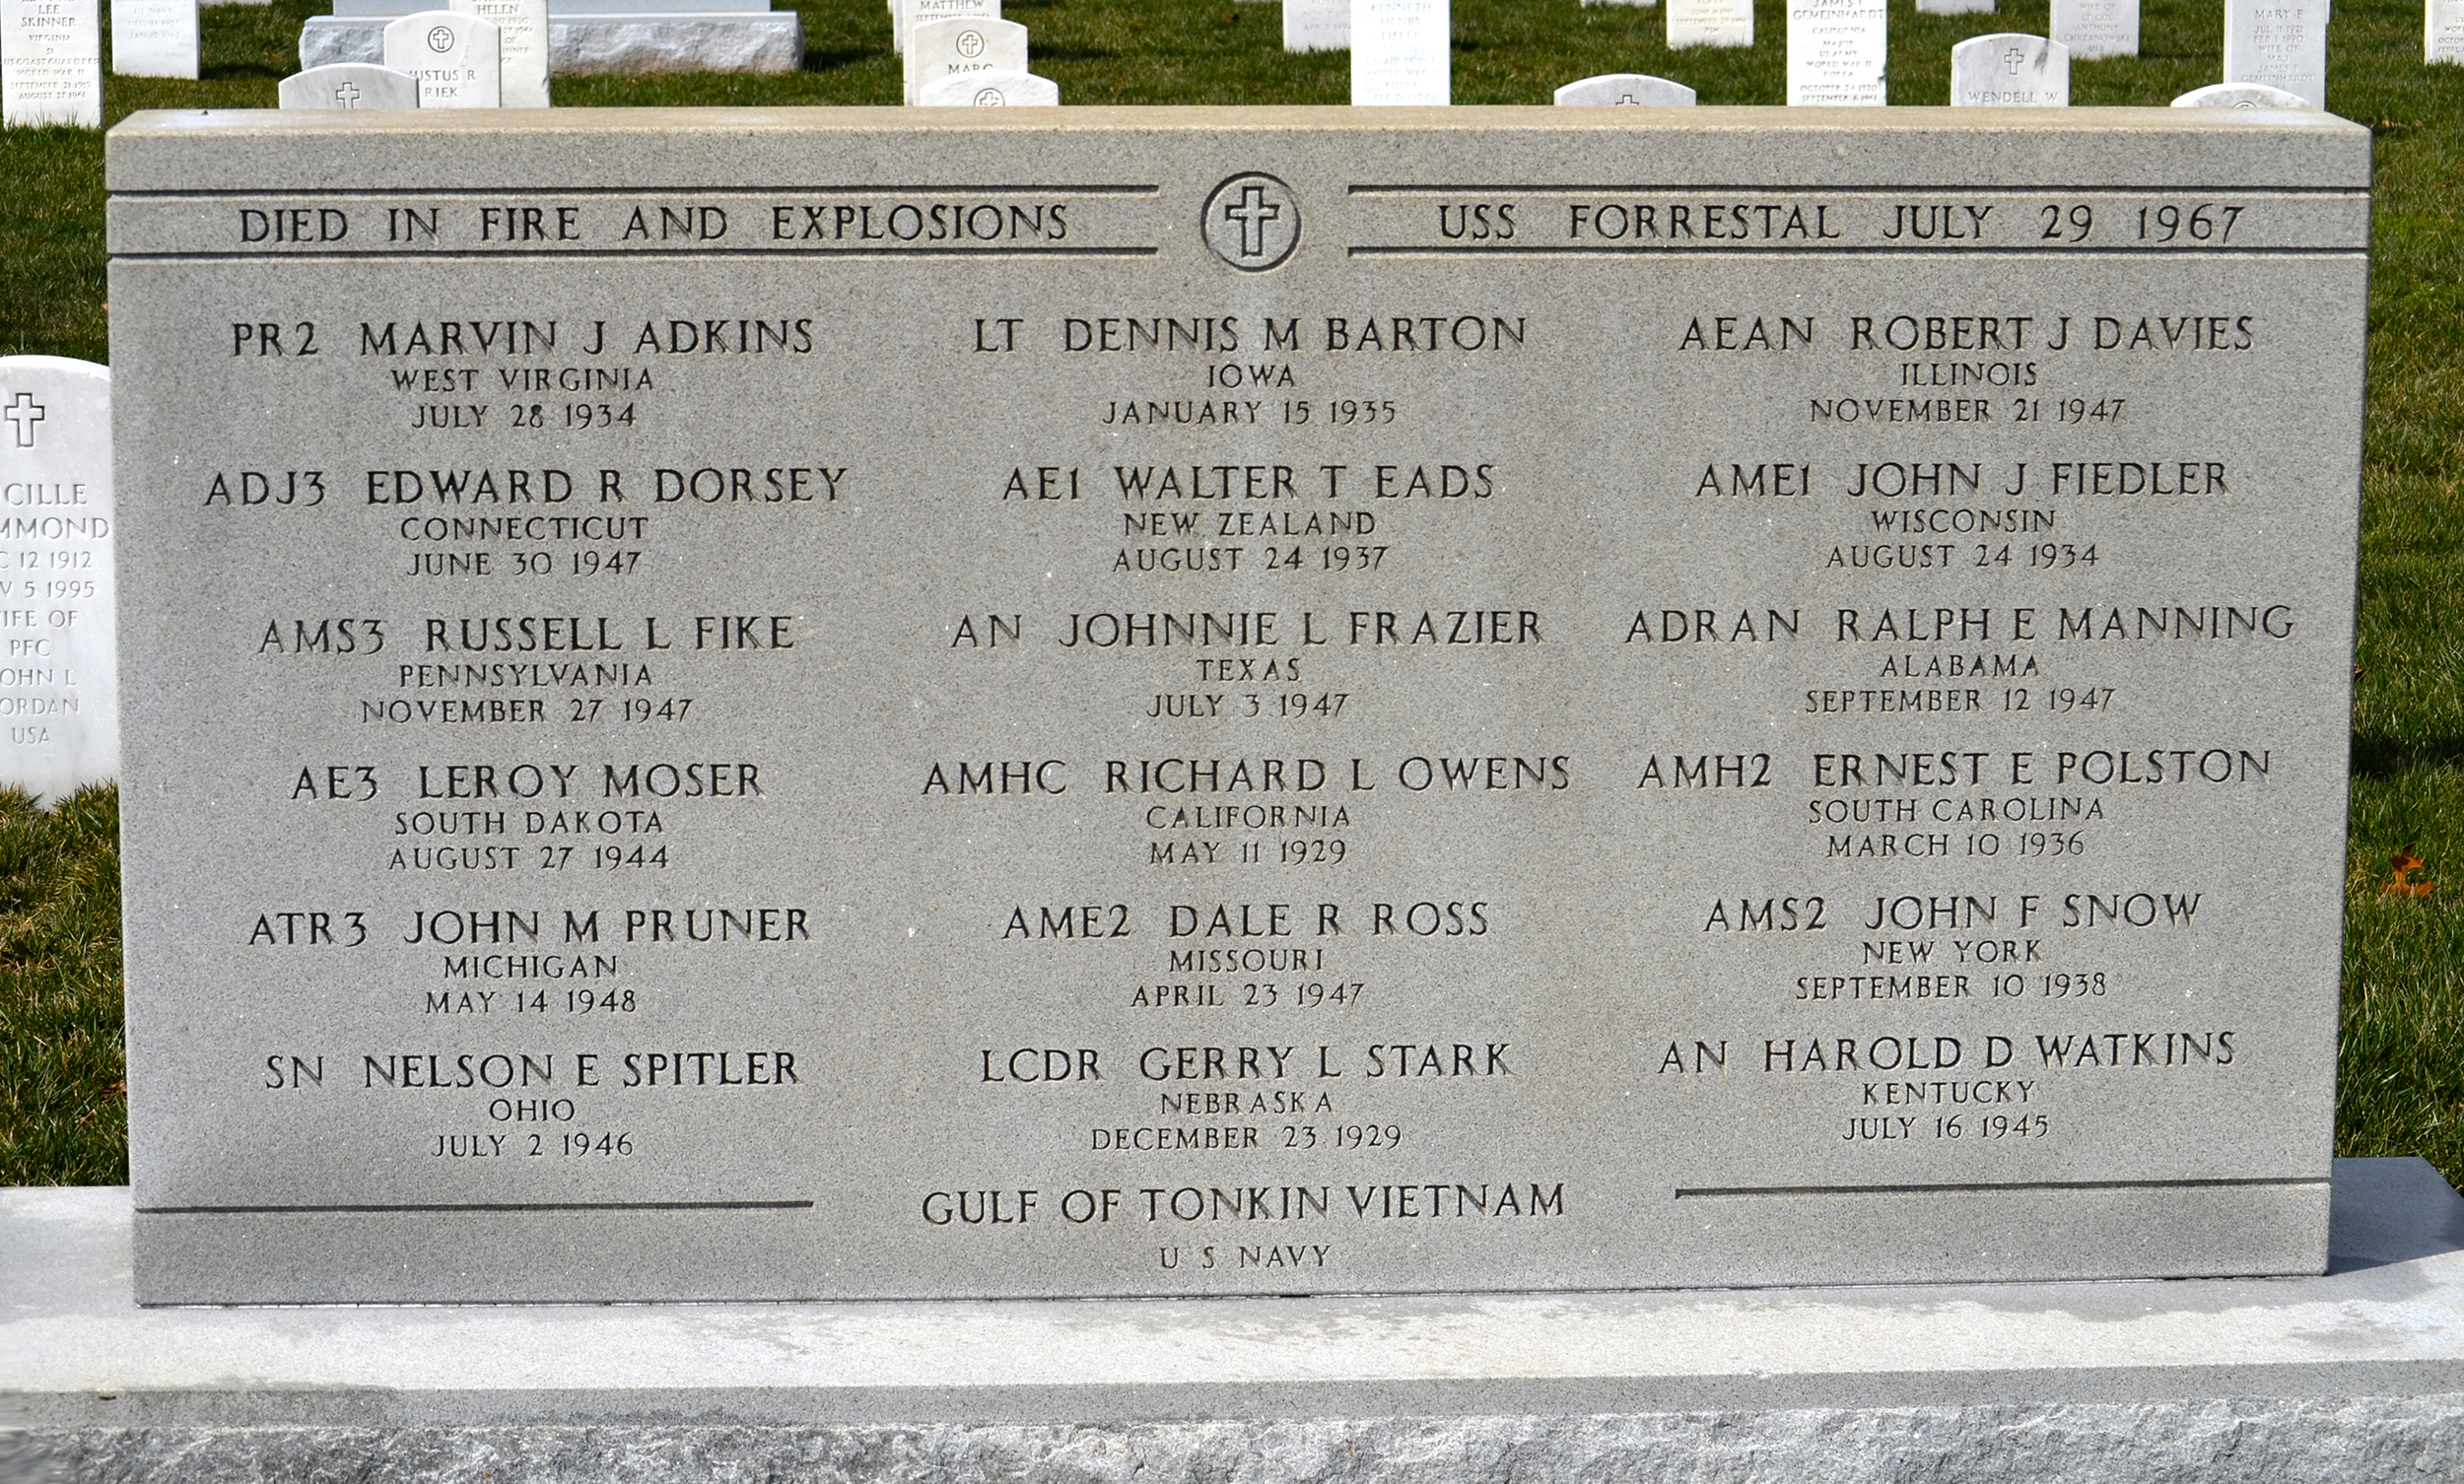 USS Forrestal group burial site - Arlington National Cemetery - 2013-03-15